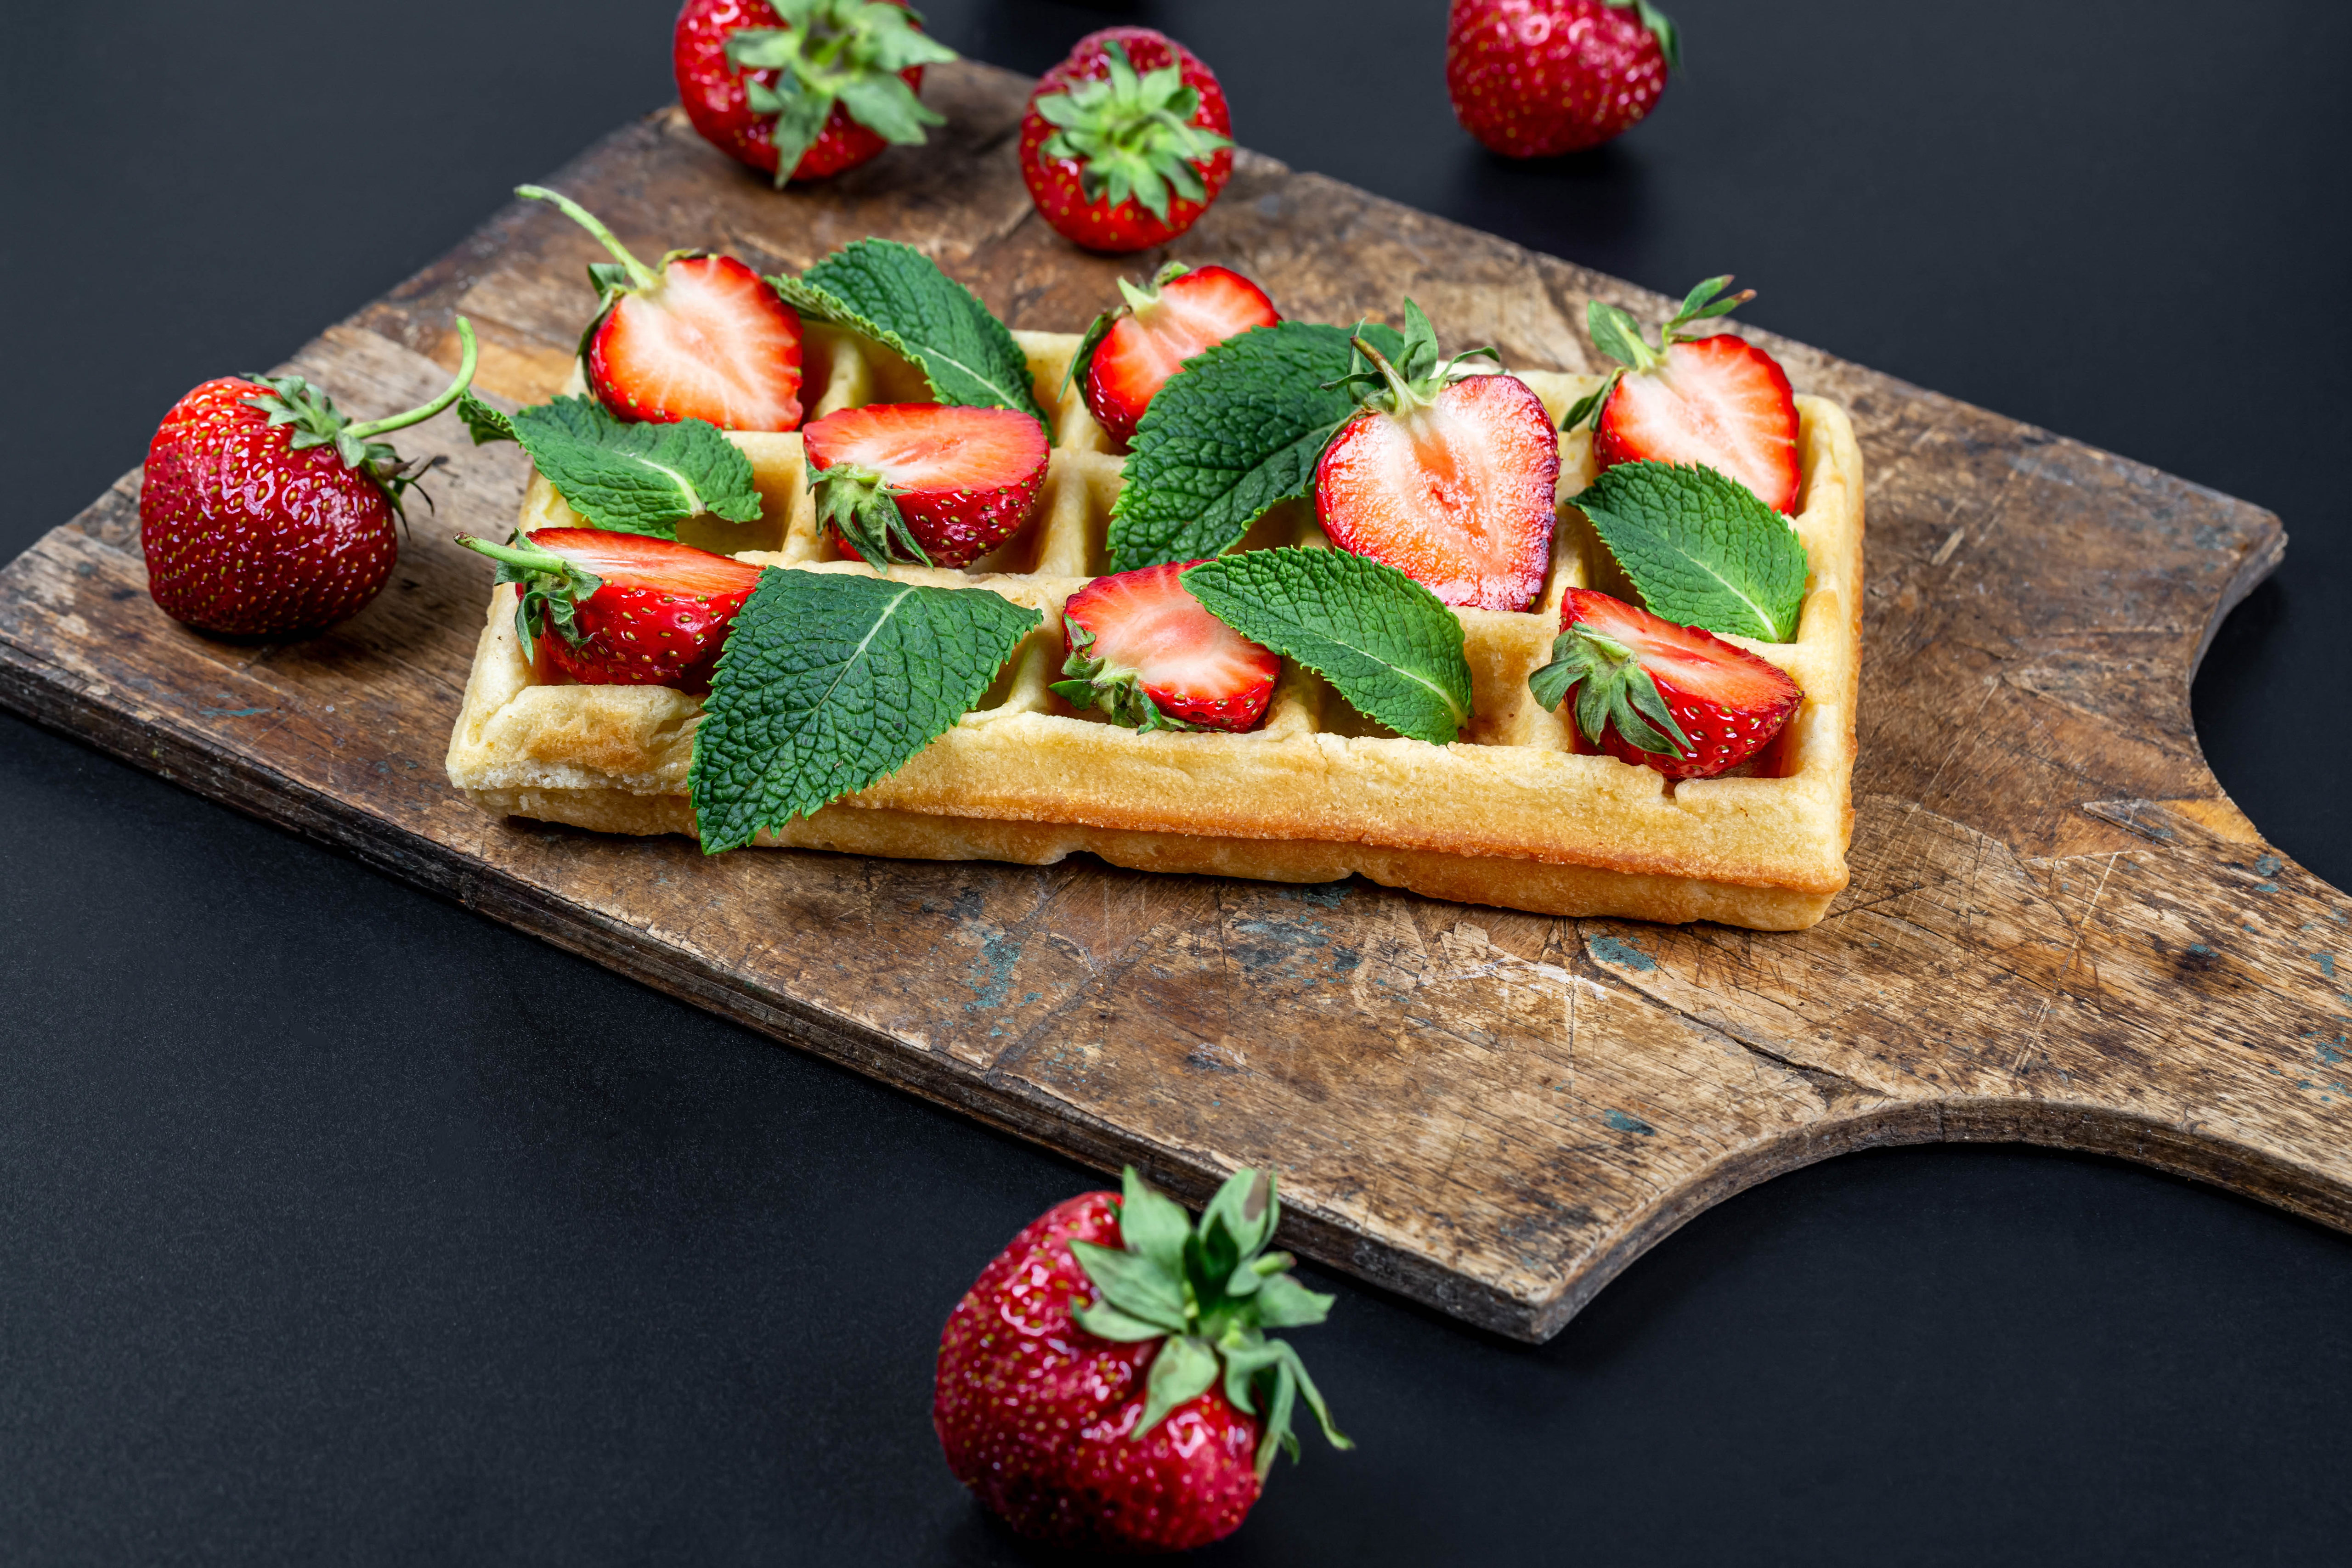 76528 download wallpaper Food, Vienna Waffles, Viennese Waffles, Waffles, Strawberry, Fruits, Berries screensavers and pictures for free